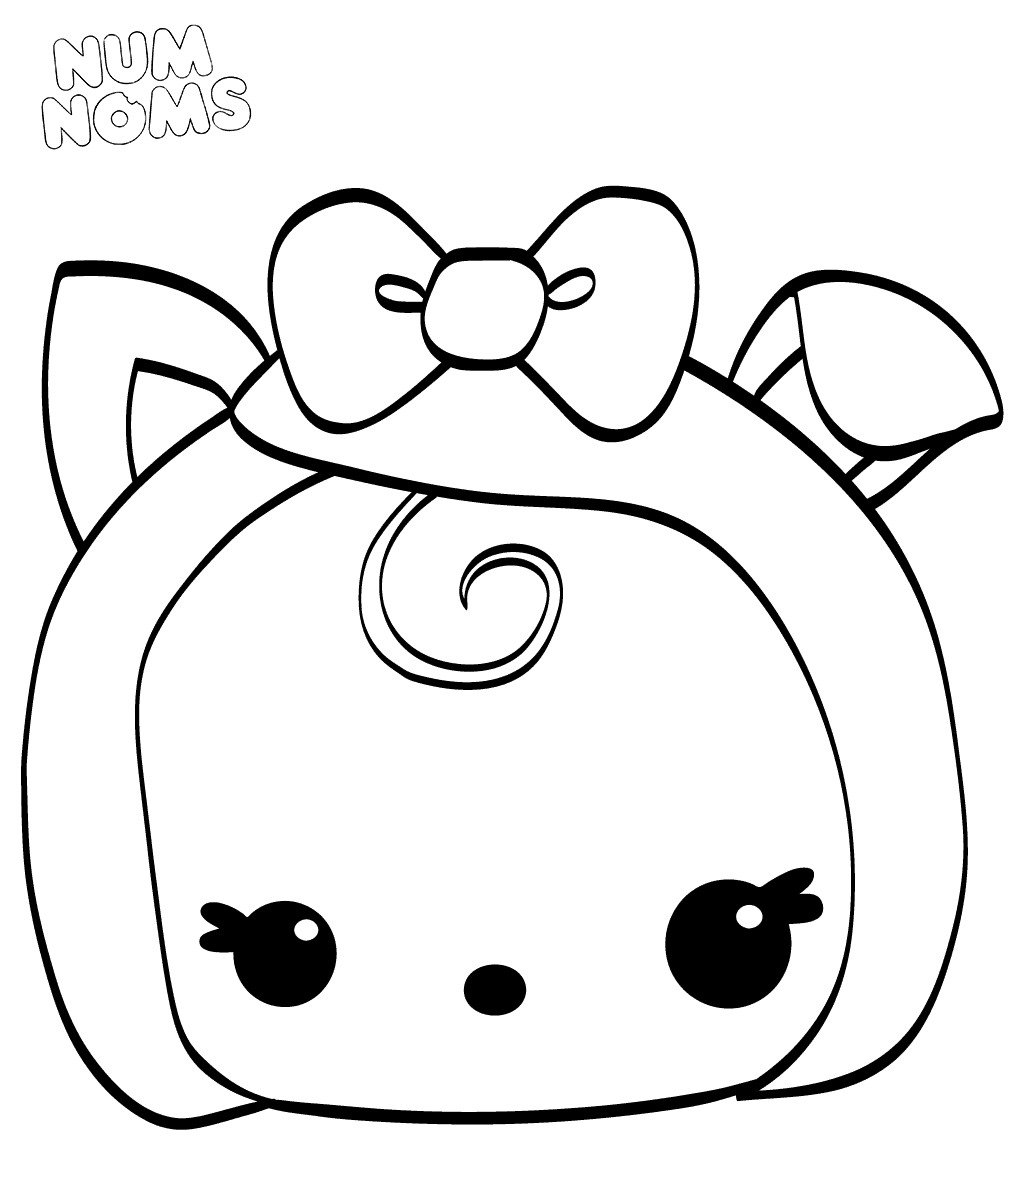 Num Noms Coloring Pages Becca Bacon